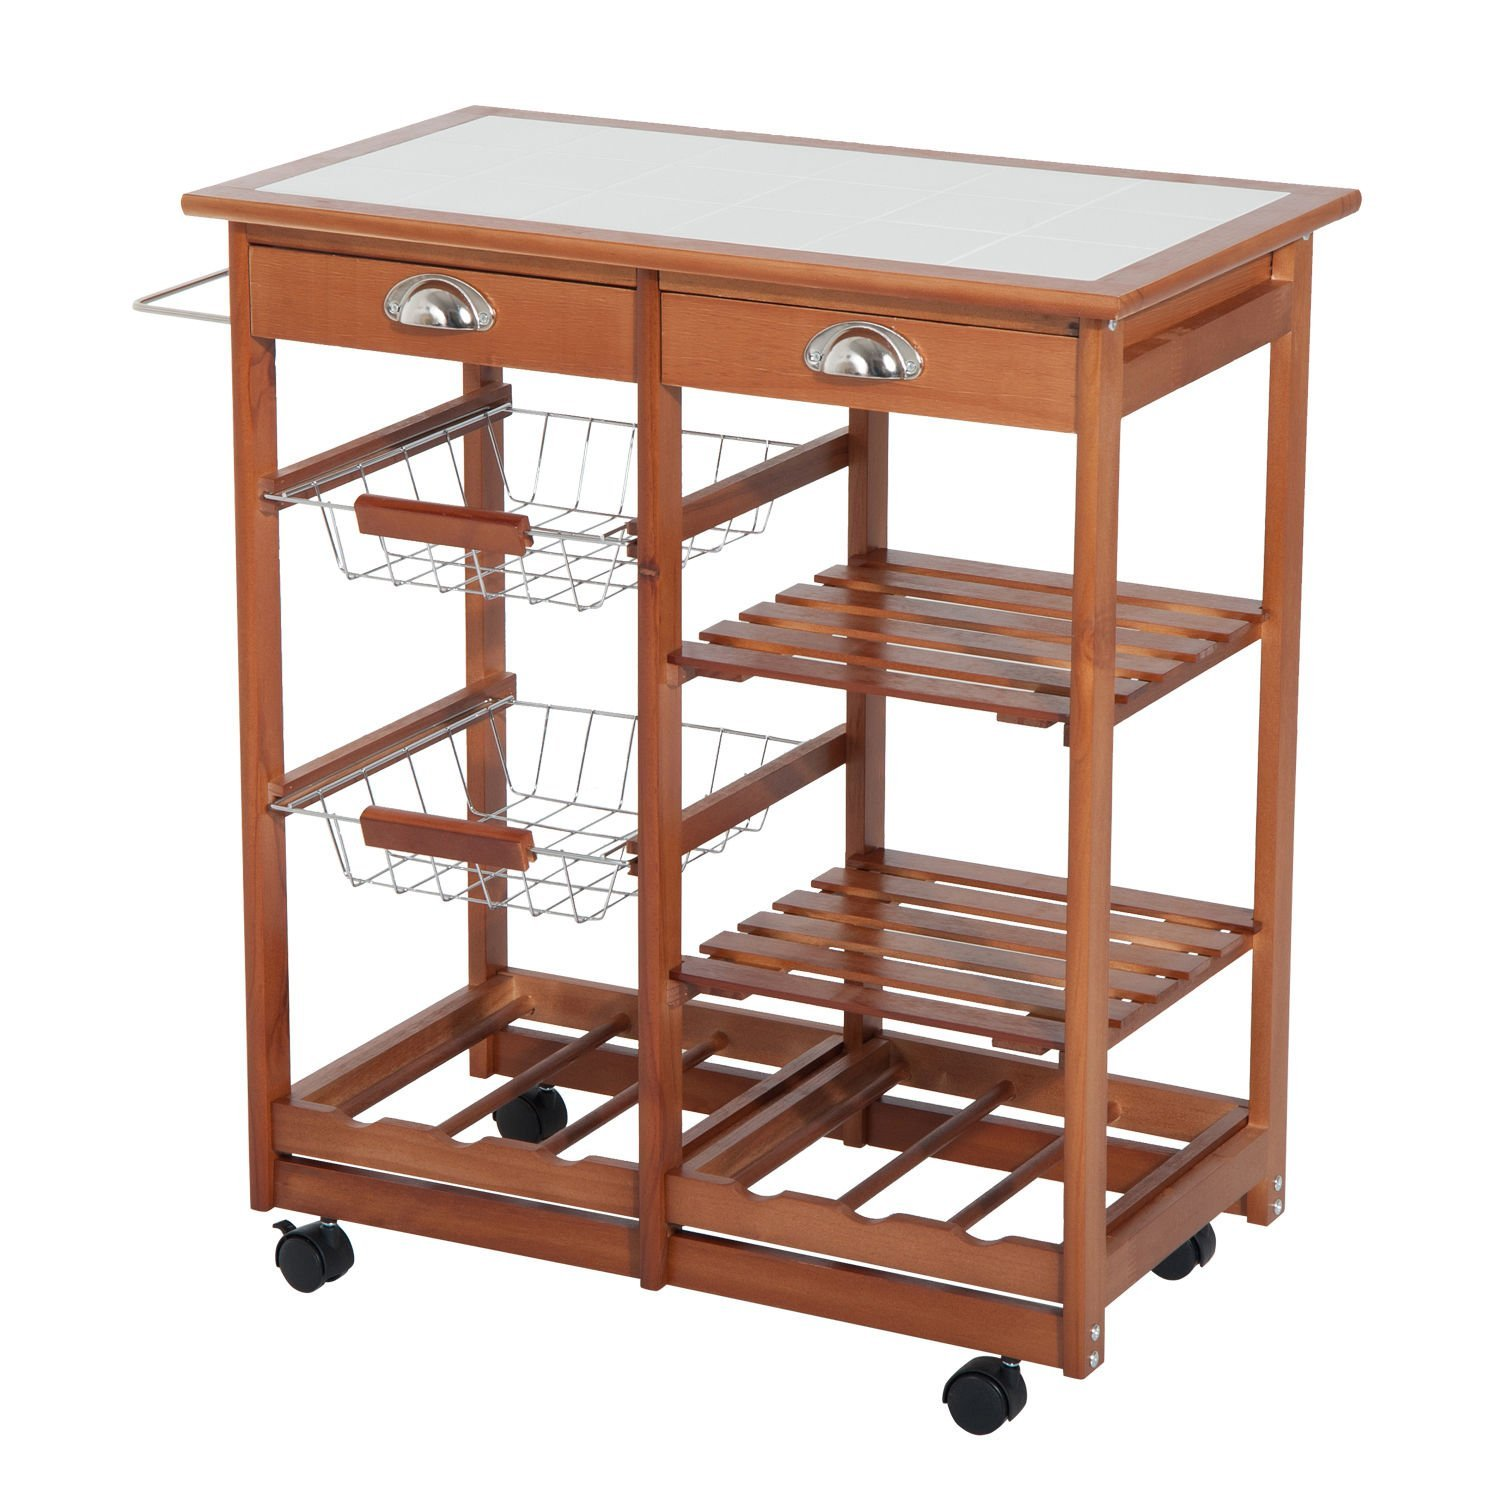 Ordinaire HomCom Rolling Tile Top Wooden Kitchen Trolley Microwave Cart With 6 Bottle  Wine Rack